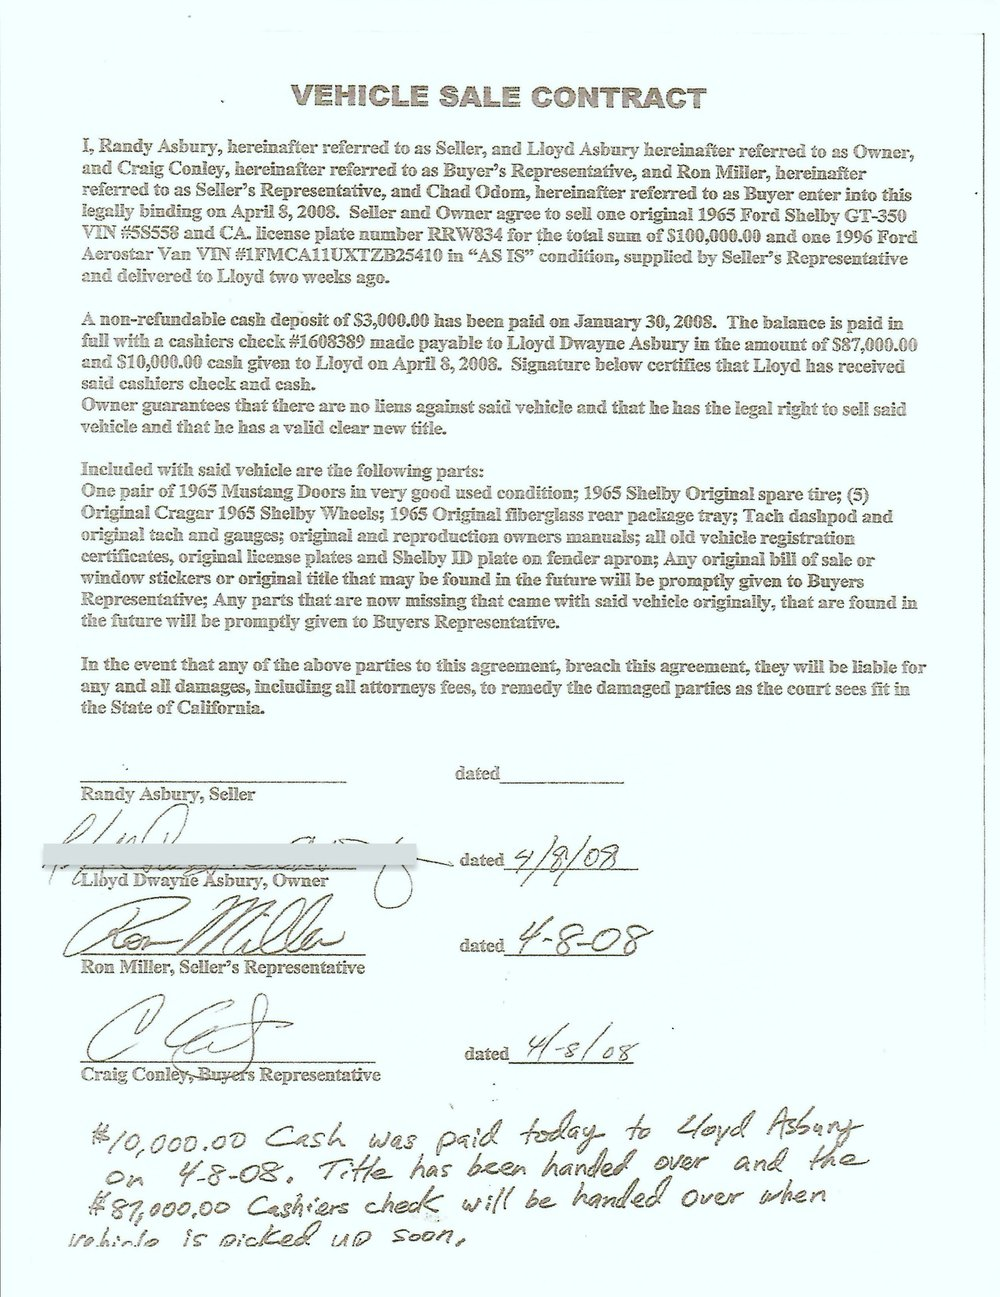 2008 Sale Contract.jpeg